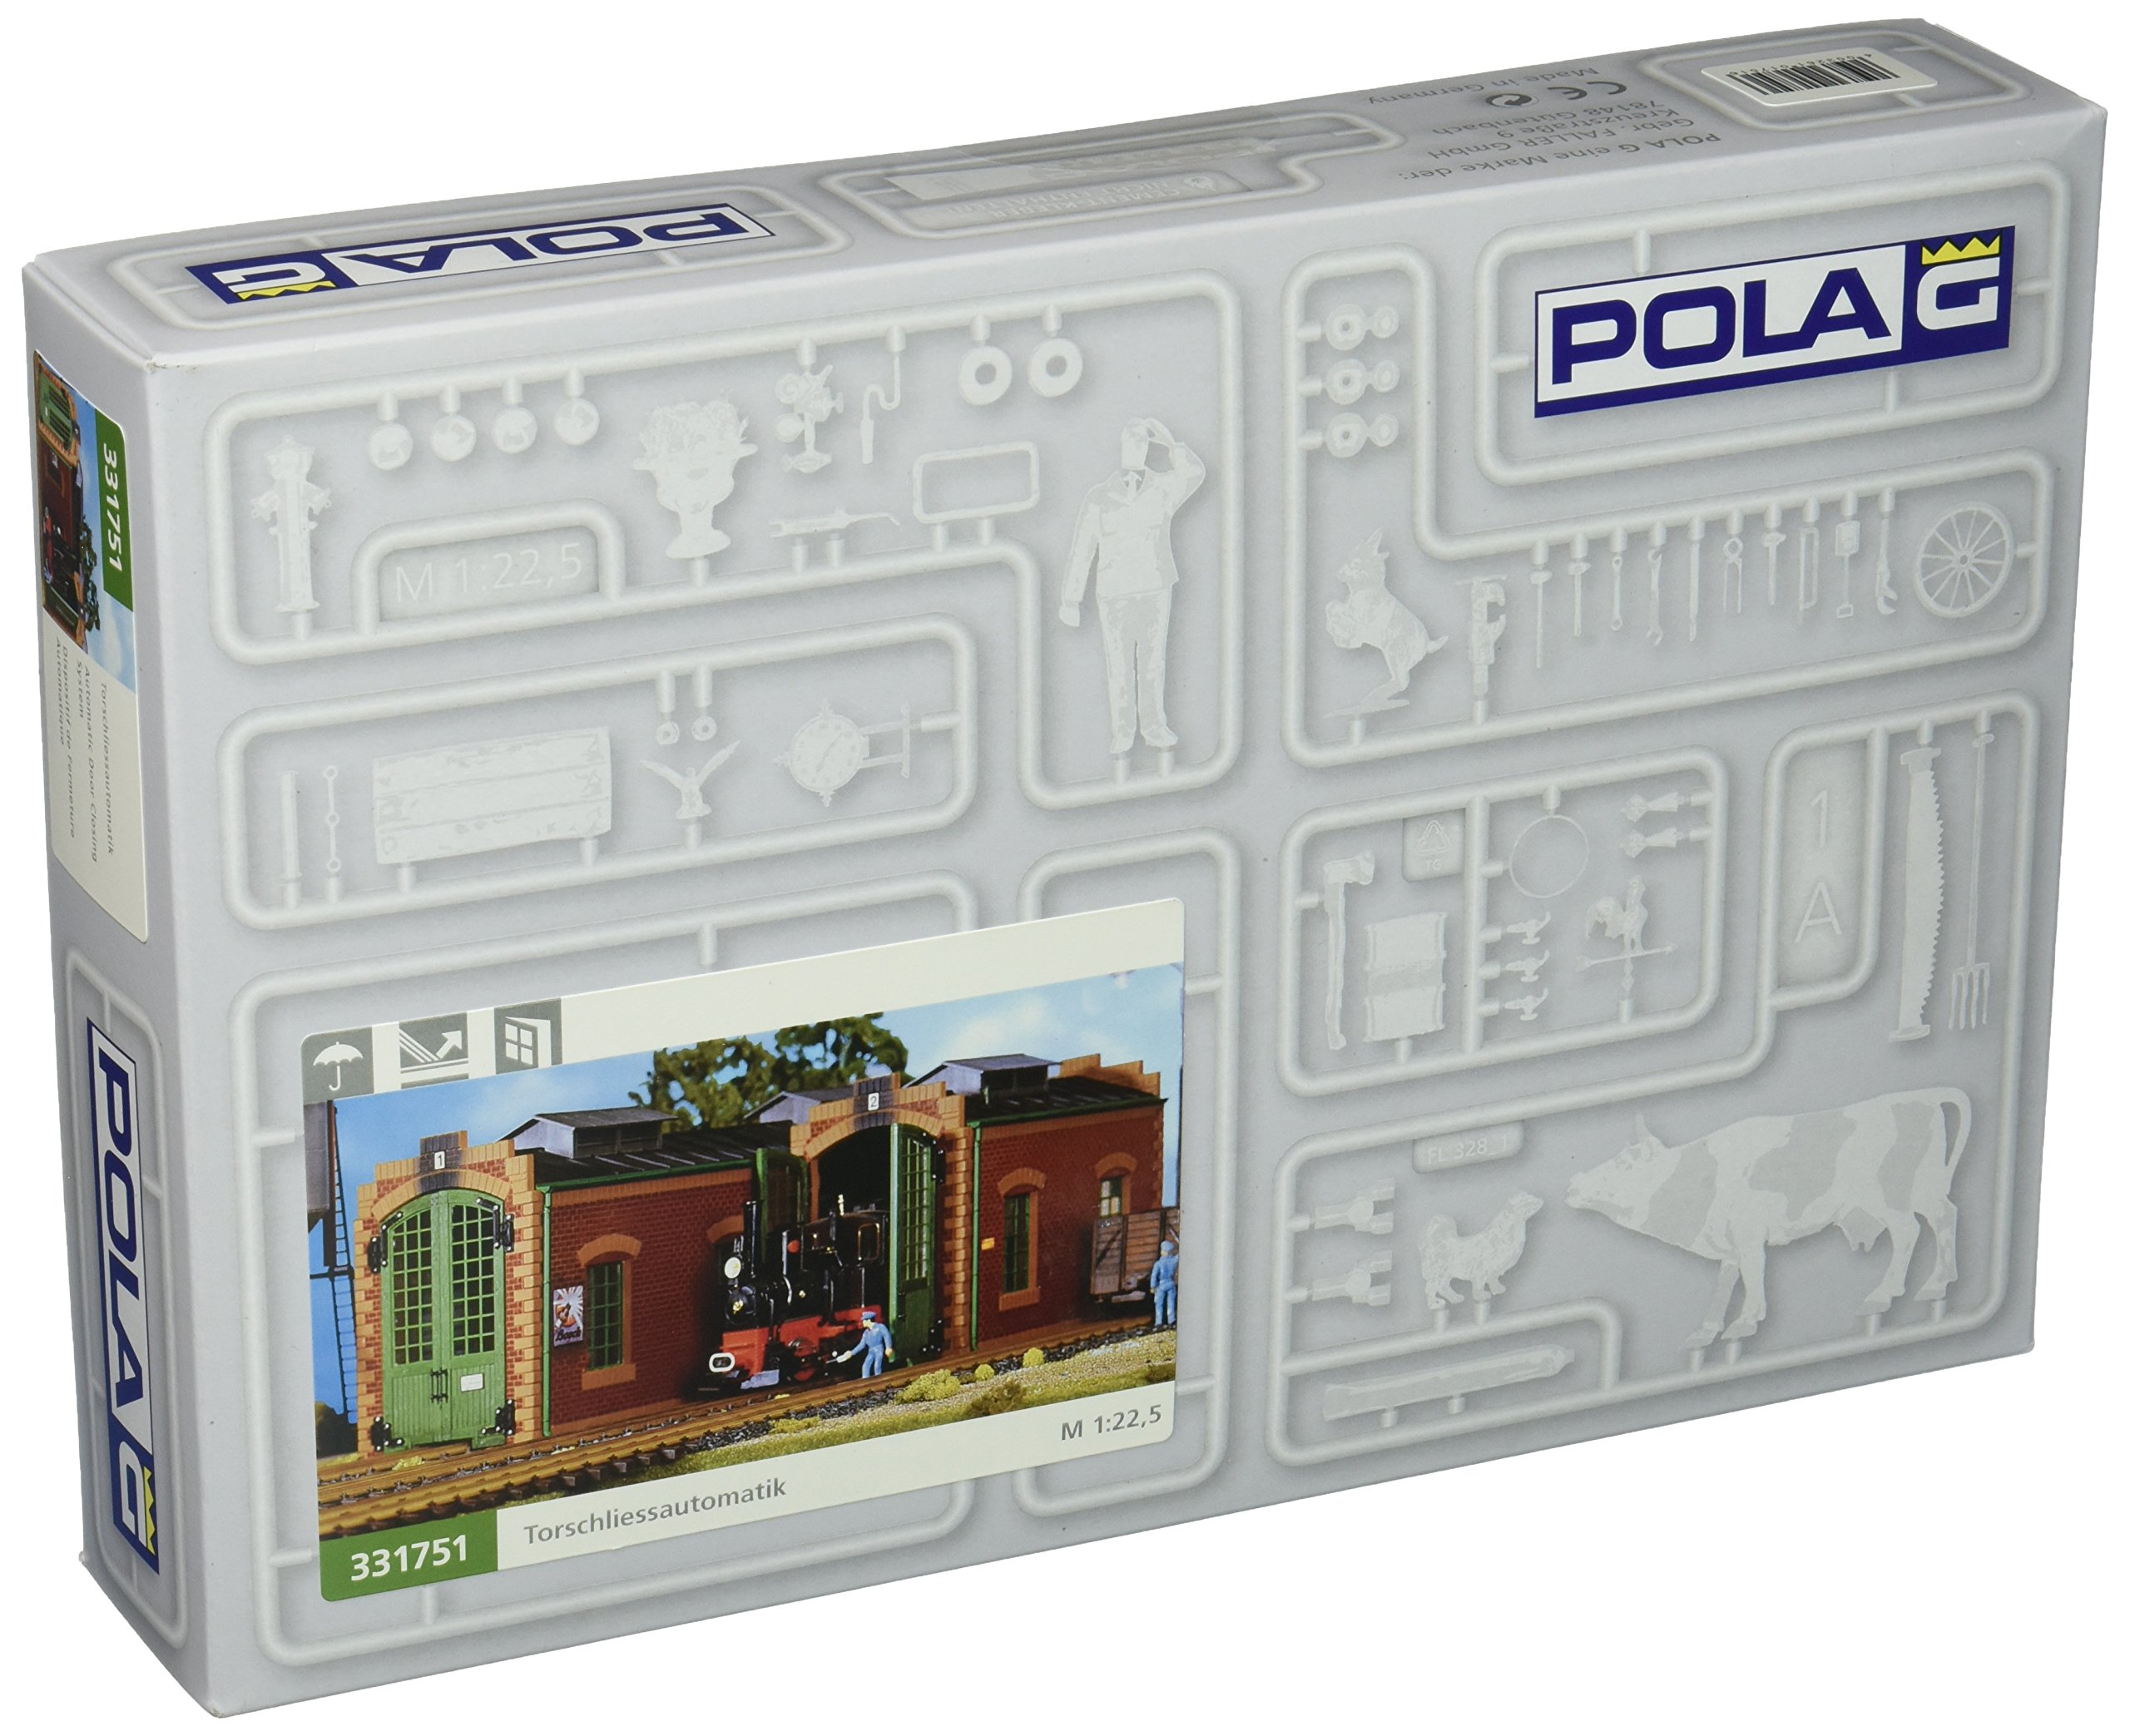 POLA 331751 Auto-Matic Door Close sys G Scale Building Kit